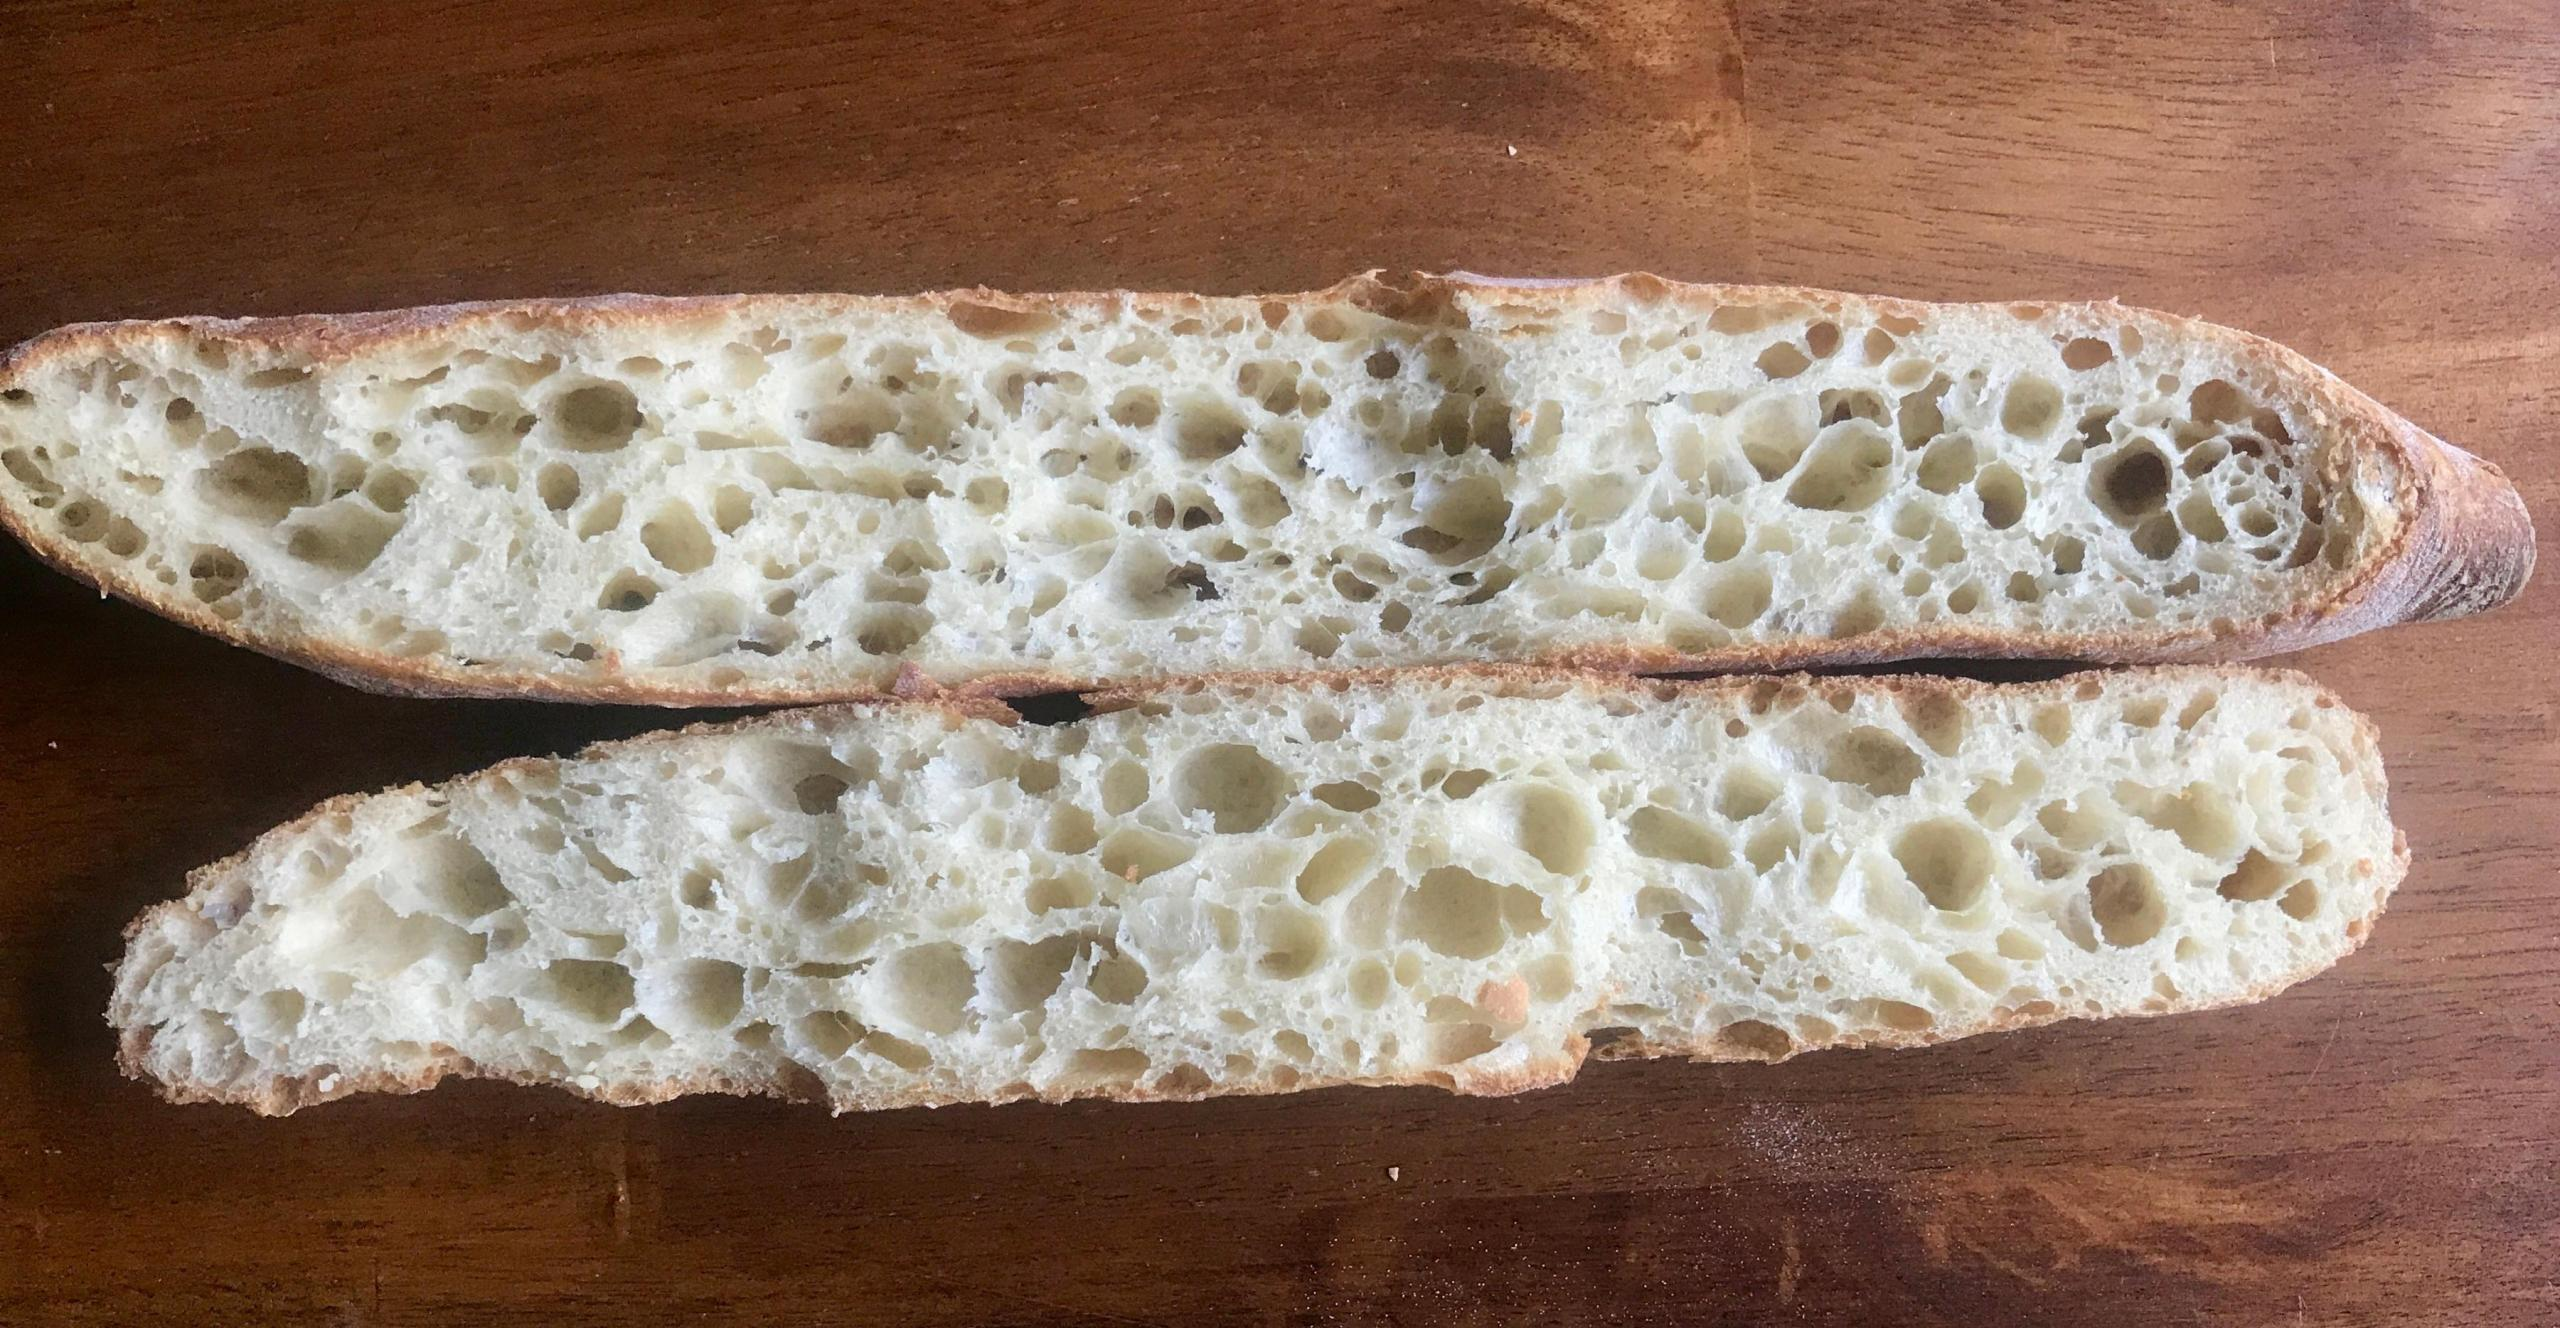 french flour crumb